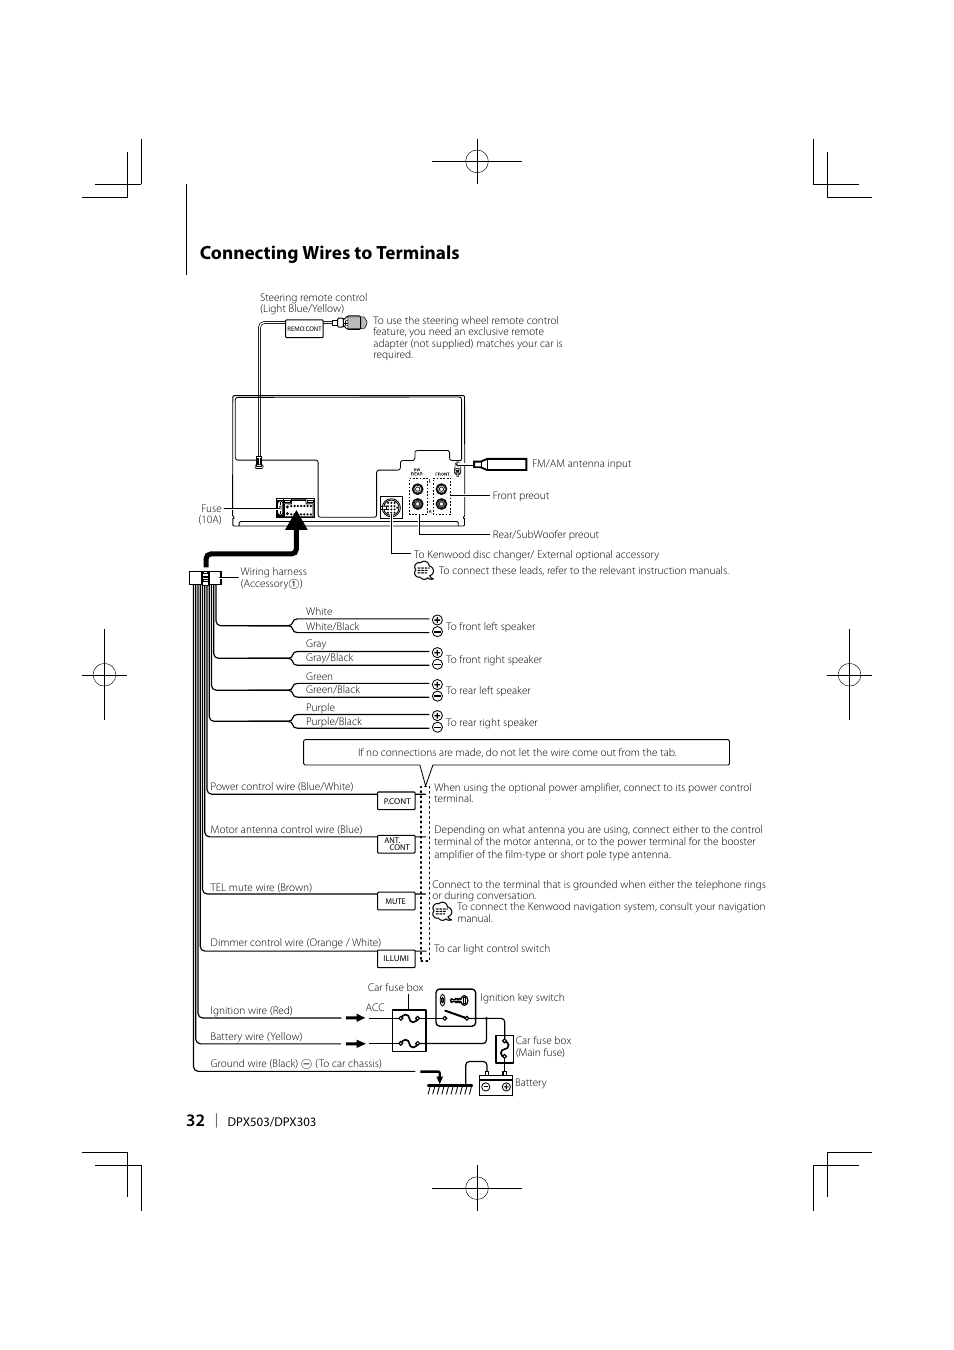 hight resolution of wiring diagram on connecting wires to terminals kenwood dpx503 user manual page 32 on